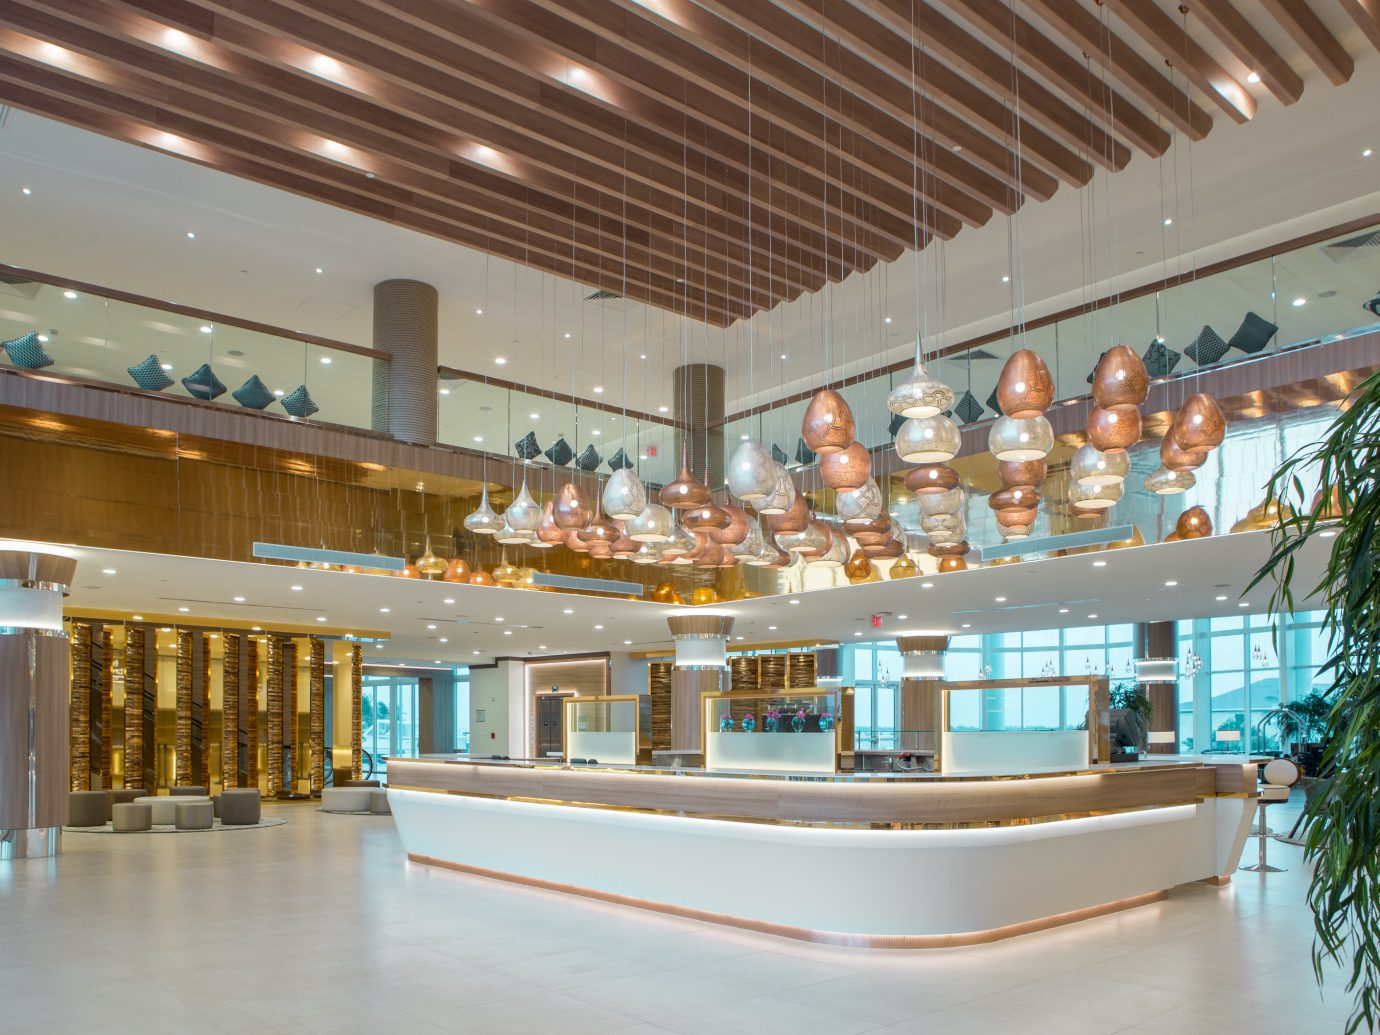 Hotels indoor ceiling floor shopping mall Lobby building plaza interior design retail convention center counter headquarters